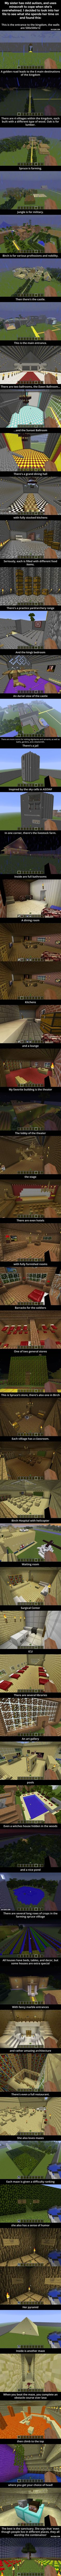 Girl With Mild Autism Uses Minecraft To Cope When She's Overwhelmed. Here's The Kingdom She Built. A girl with mild autism uses Minecraft to cope when she's overwhelmed. Here's the kingdom she built. Life Hacks, All Meme, Little Bit, Faith In Humanity Restored, Mind Blown, Just In Case, Fun Facts, Funny Pictures, Funny Pics